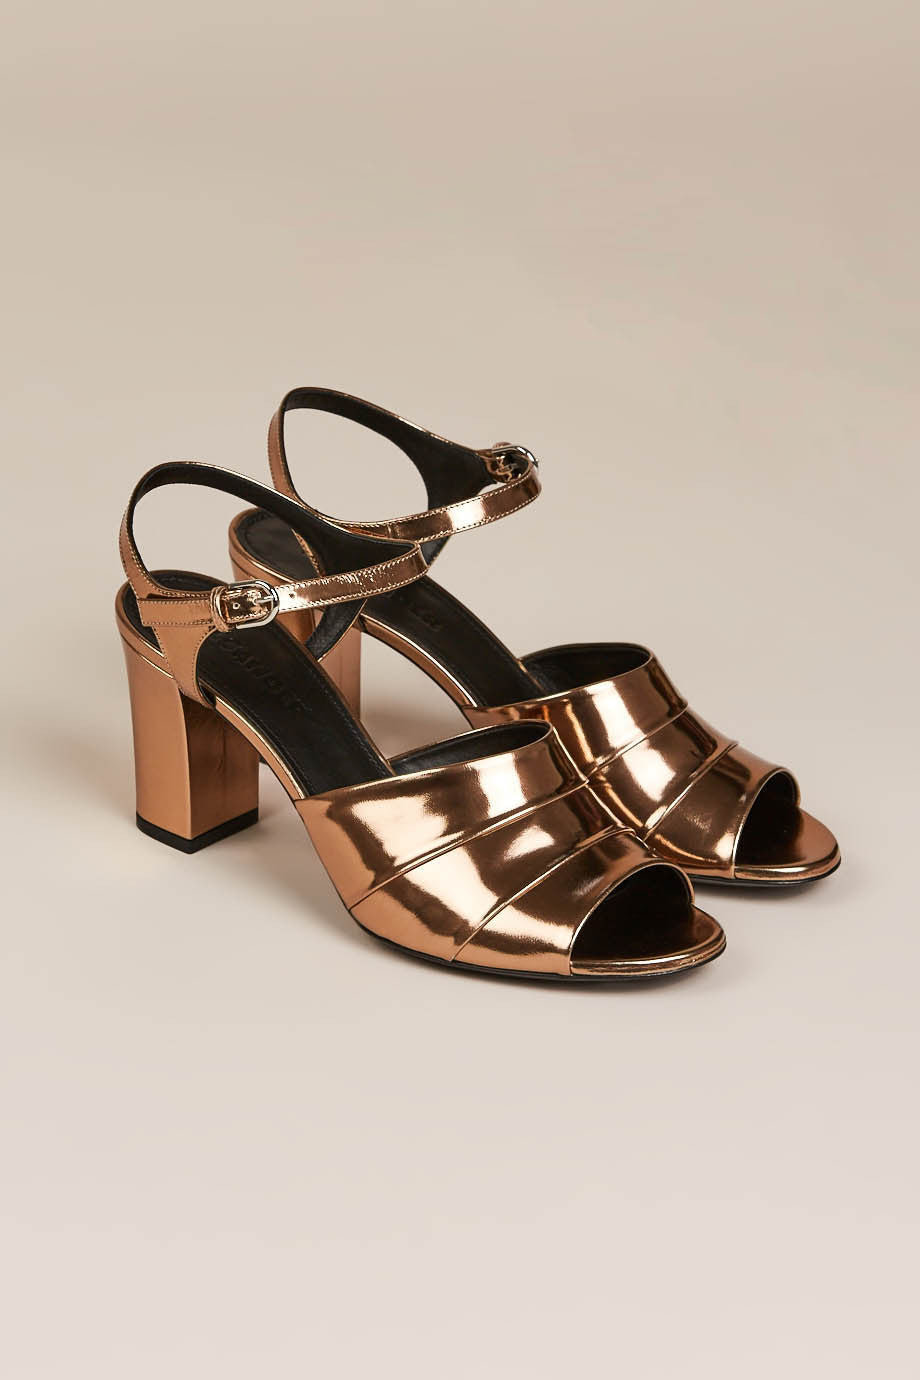 Capretto Metalizzato (Metal Heel) by Jil Sander